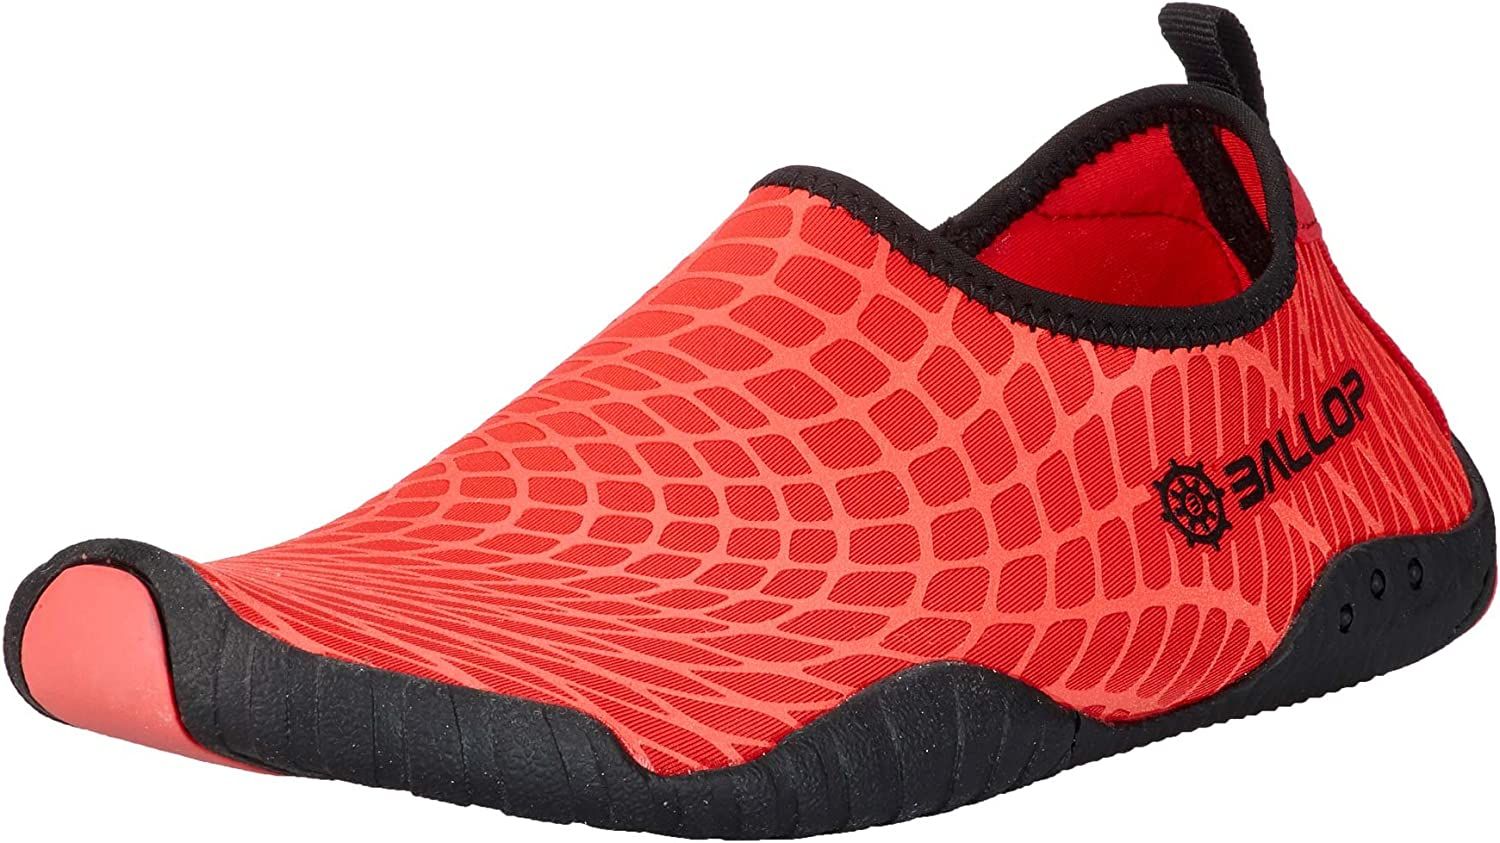 Ballop Wing Water shoes Spandex Polymesh